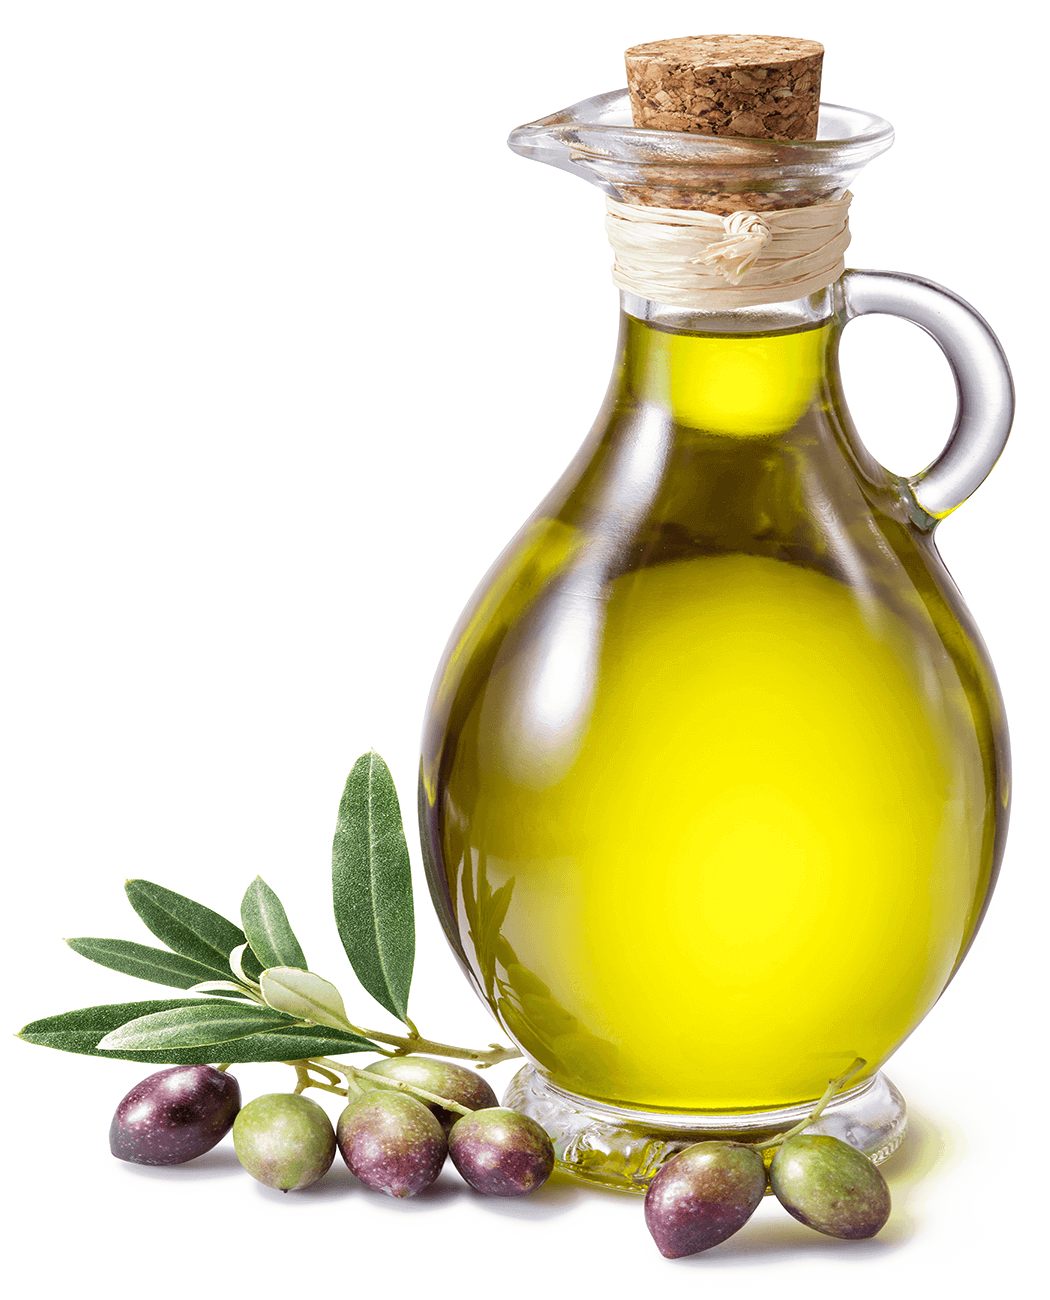 Bottle of olive oil with fresh olives